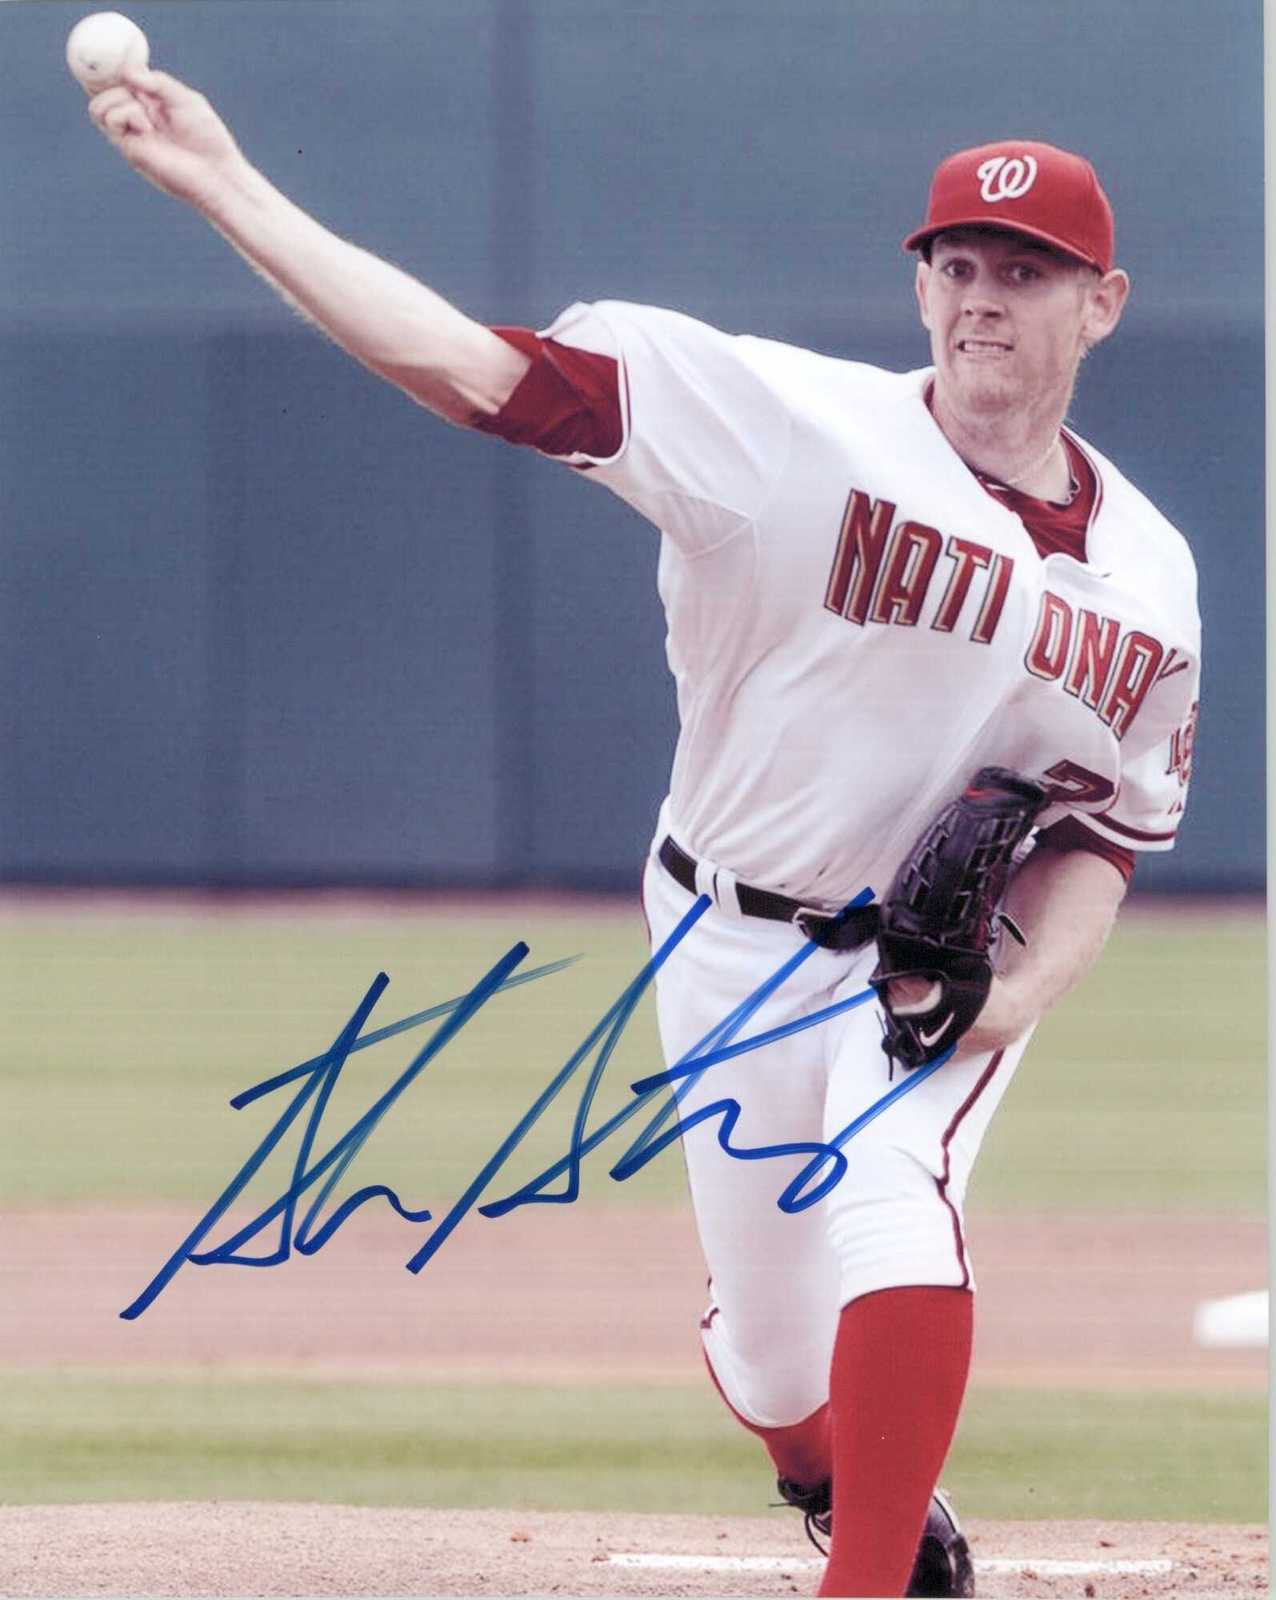 Primary image for Stephen Strasburg Signed Autographed Glossy 8x10 Photo - Washington Nationals